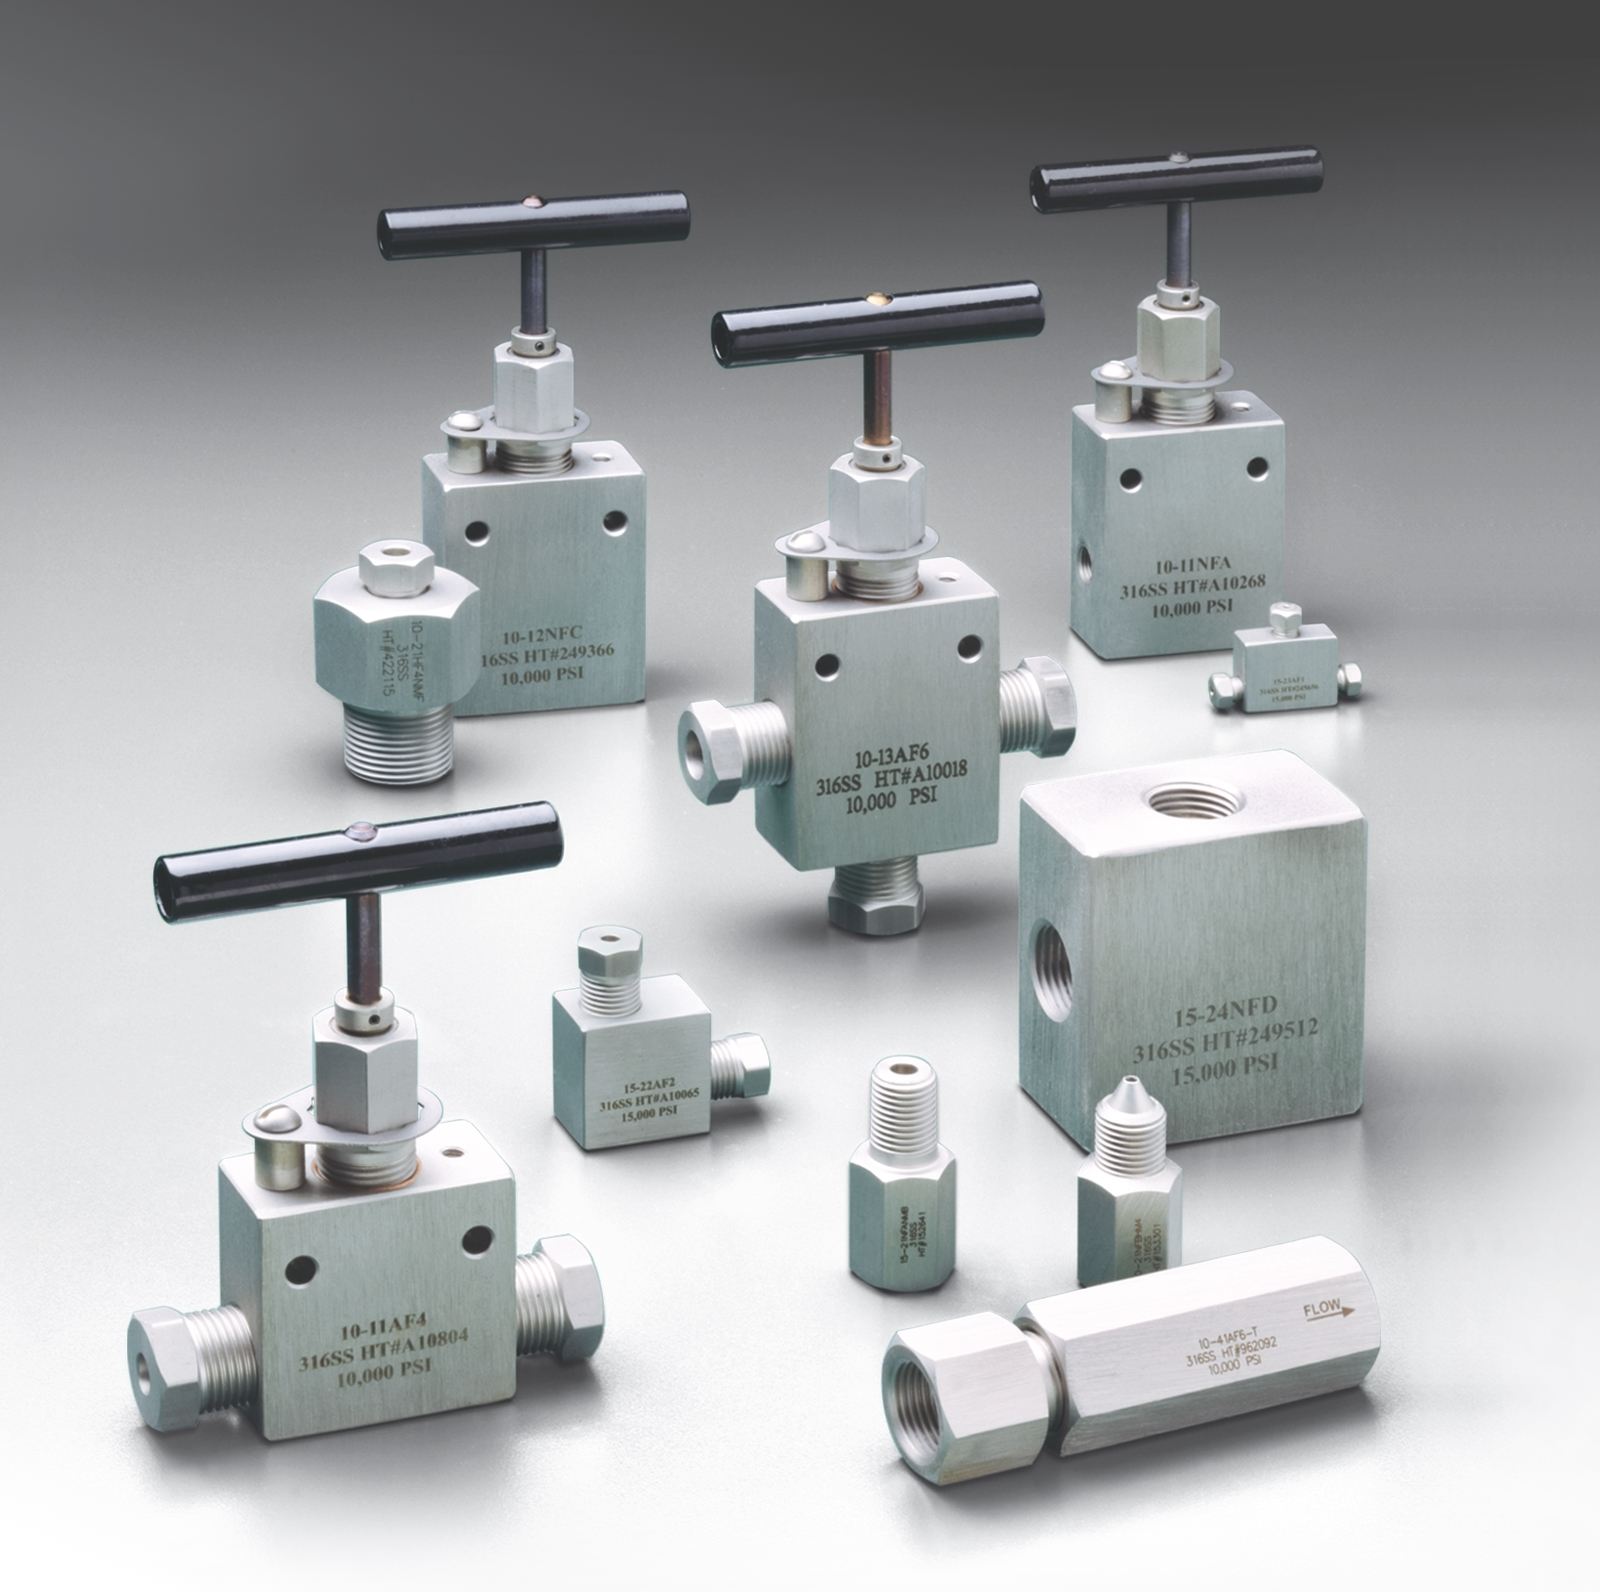 ONG Valves and Fittings Cover Image_noHIP